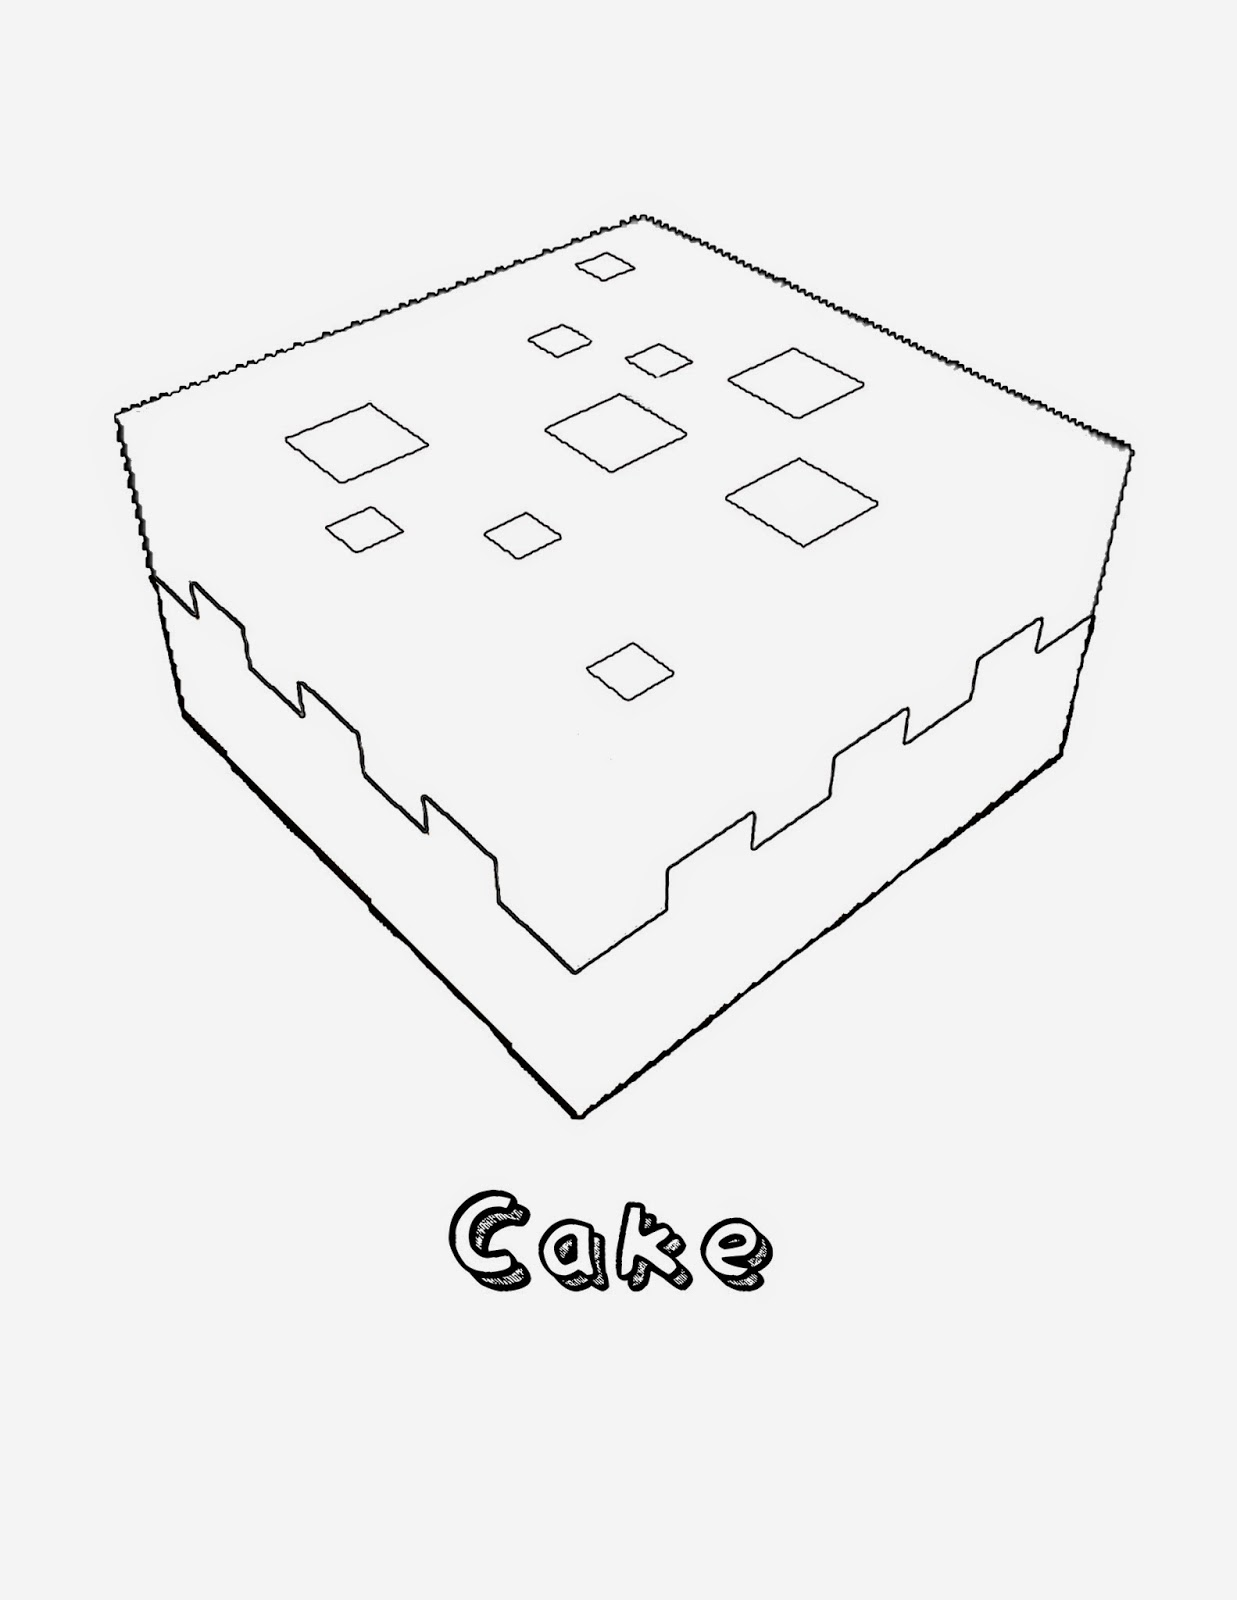 minecraft golden apple coloring pages galleons lap july 2014 minecraft pages apple golden coloring